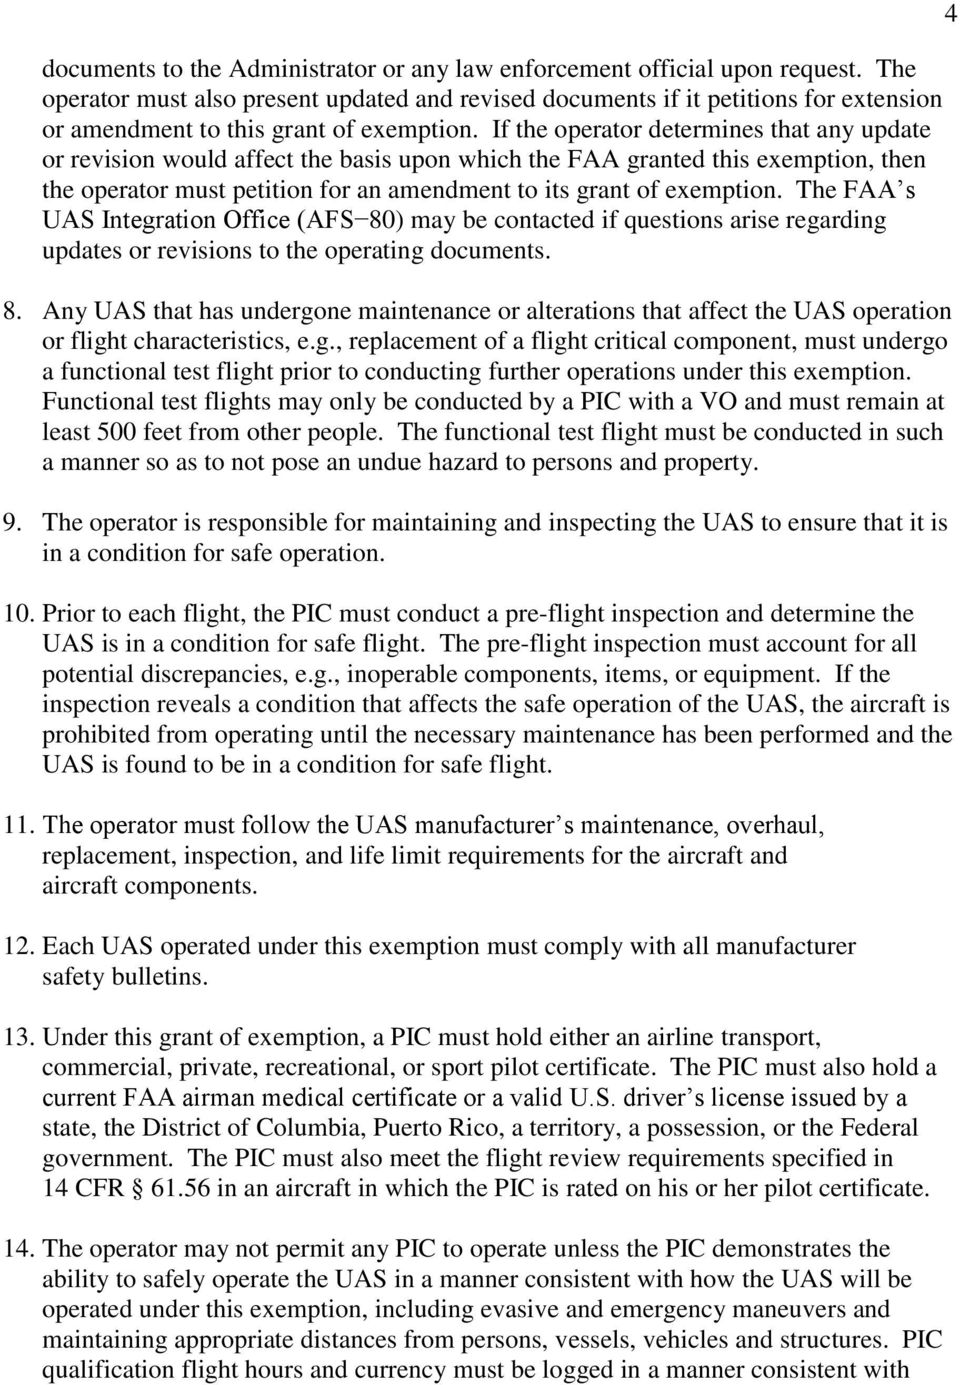 If the operator determines that any update or revision would affect the basis upon which the FAA granted this exemption, then the operator must petition for an amendment to its grant of exemption.